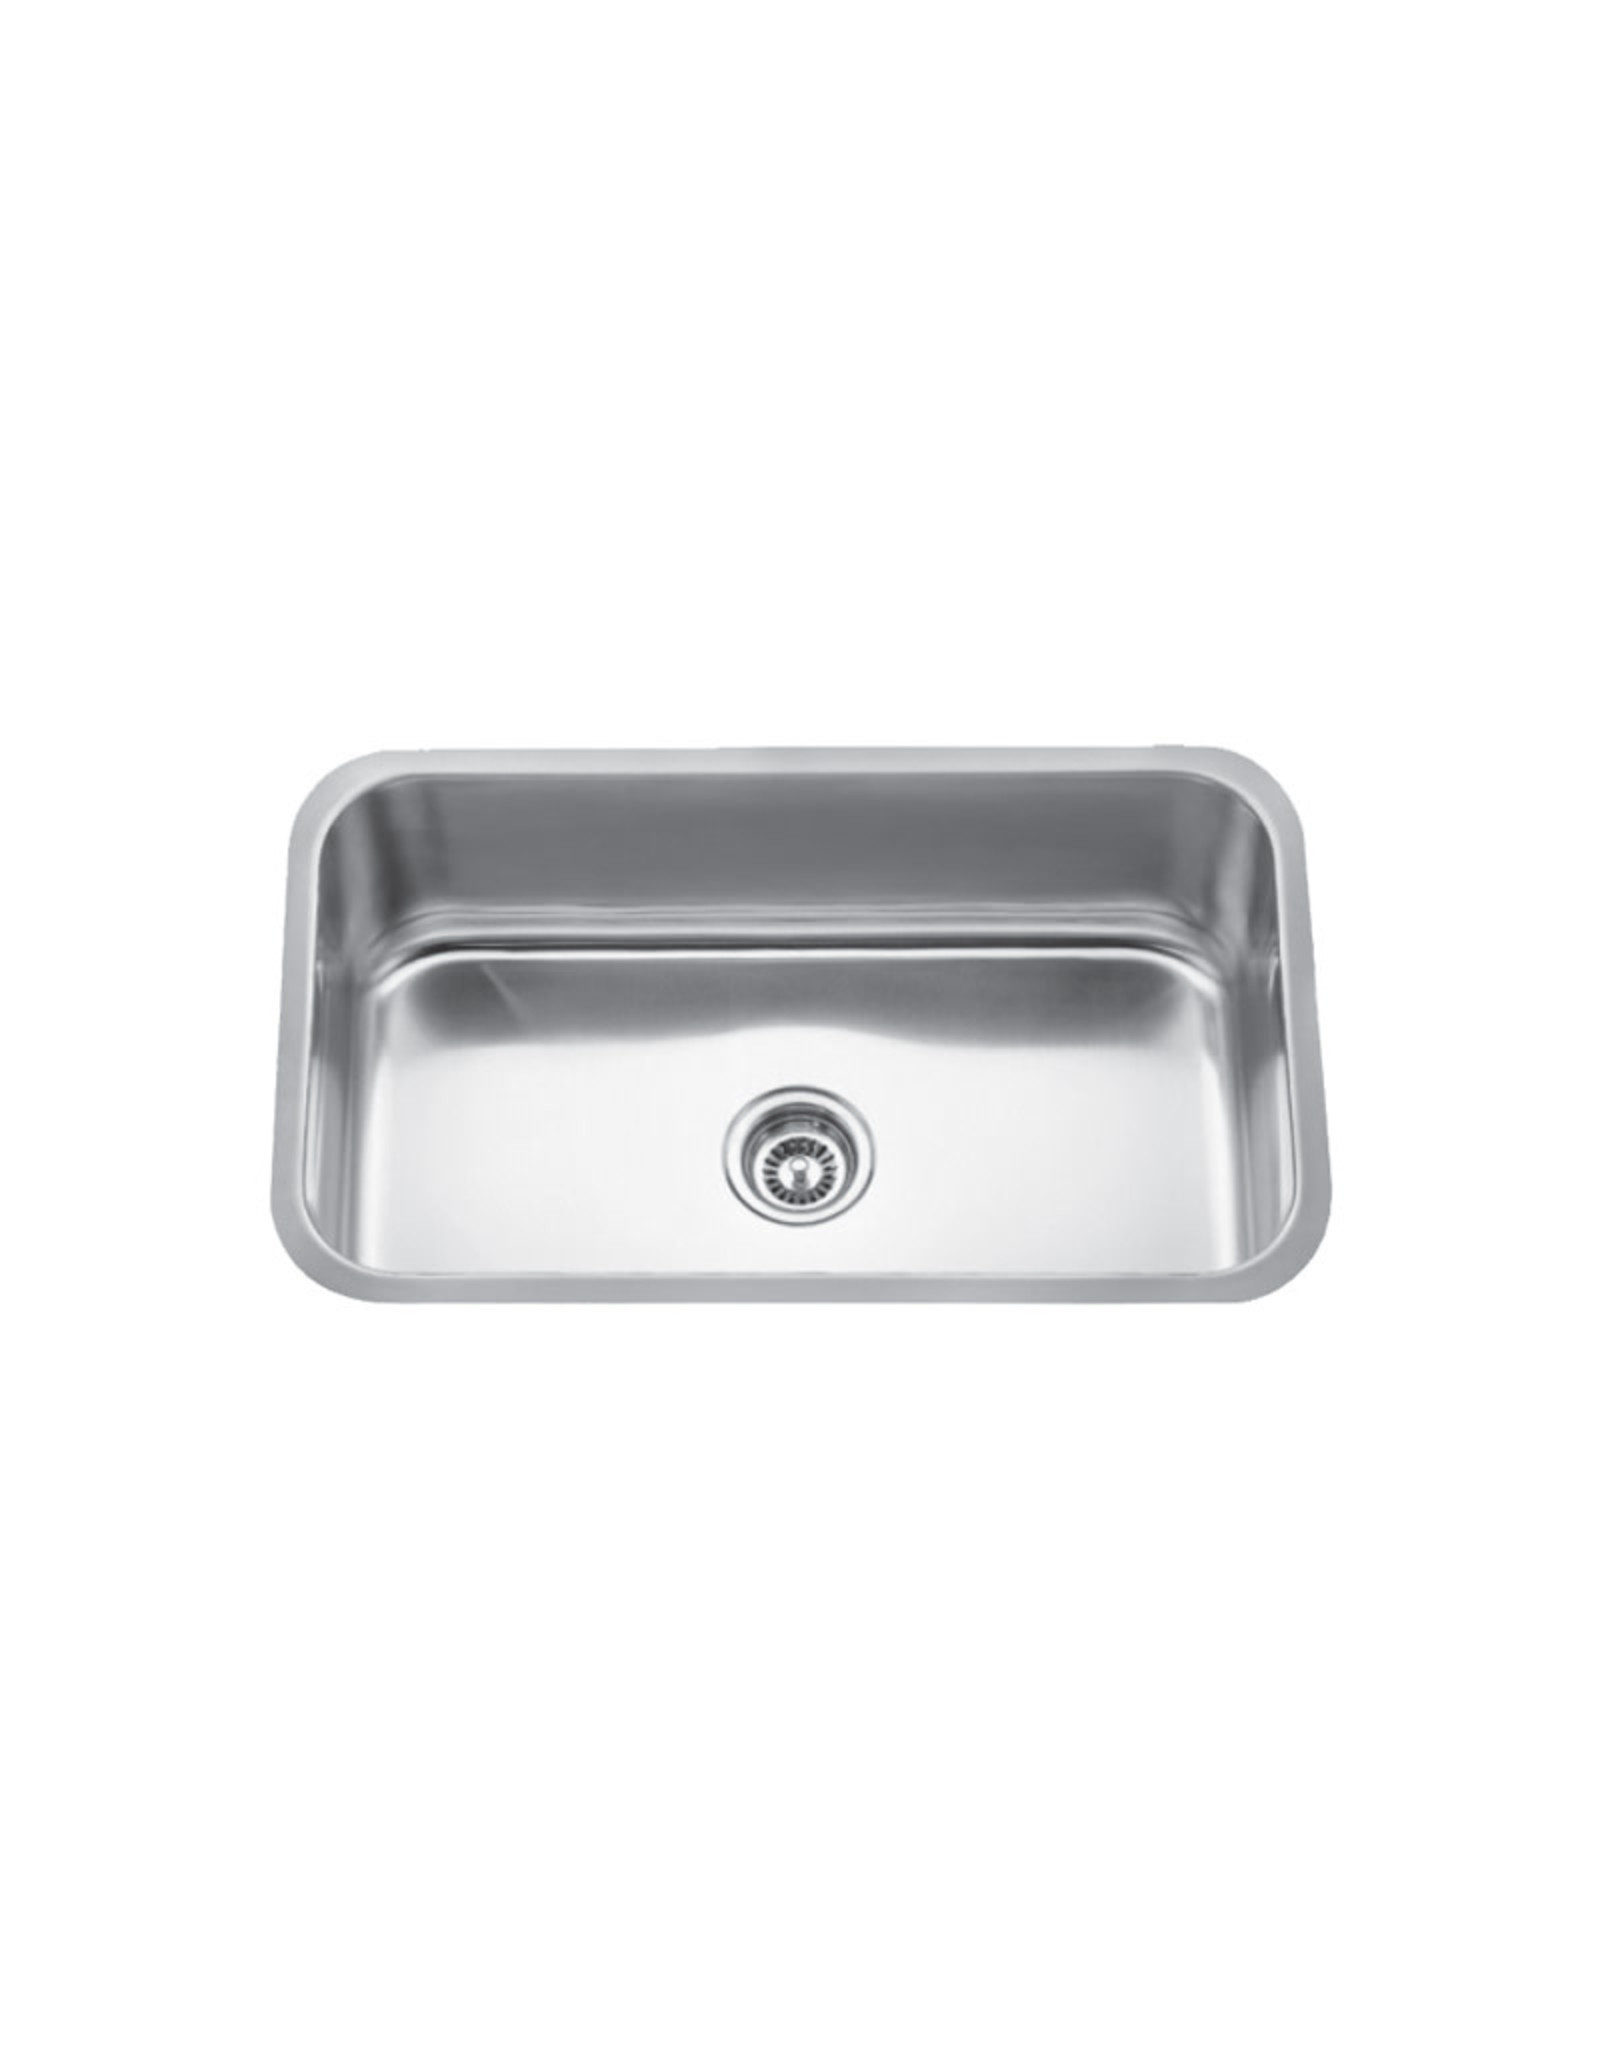 "Vogt Steyr Undermount Kitchen Sink 30"" x 18"" x 9"""